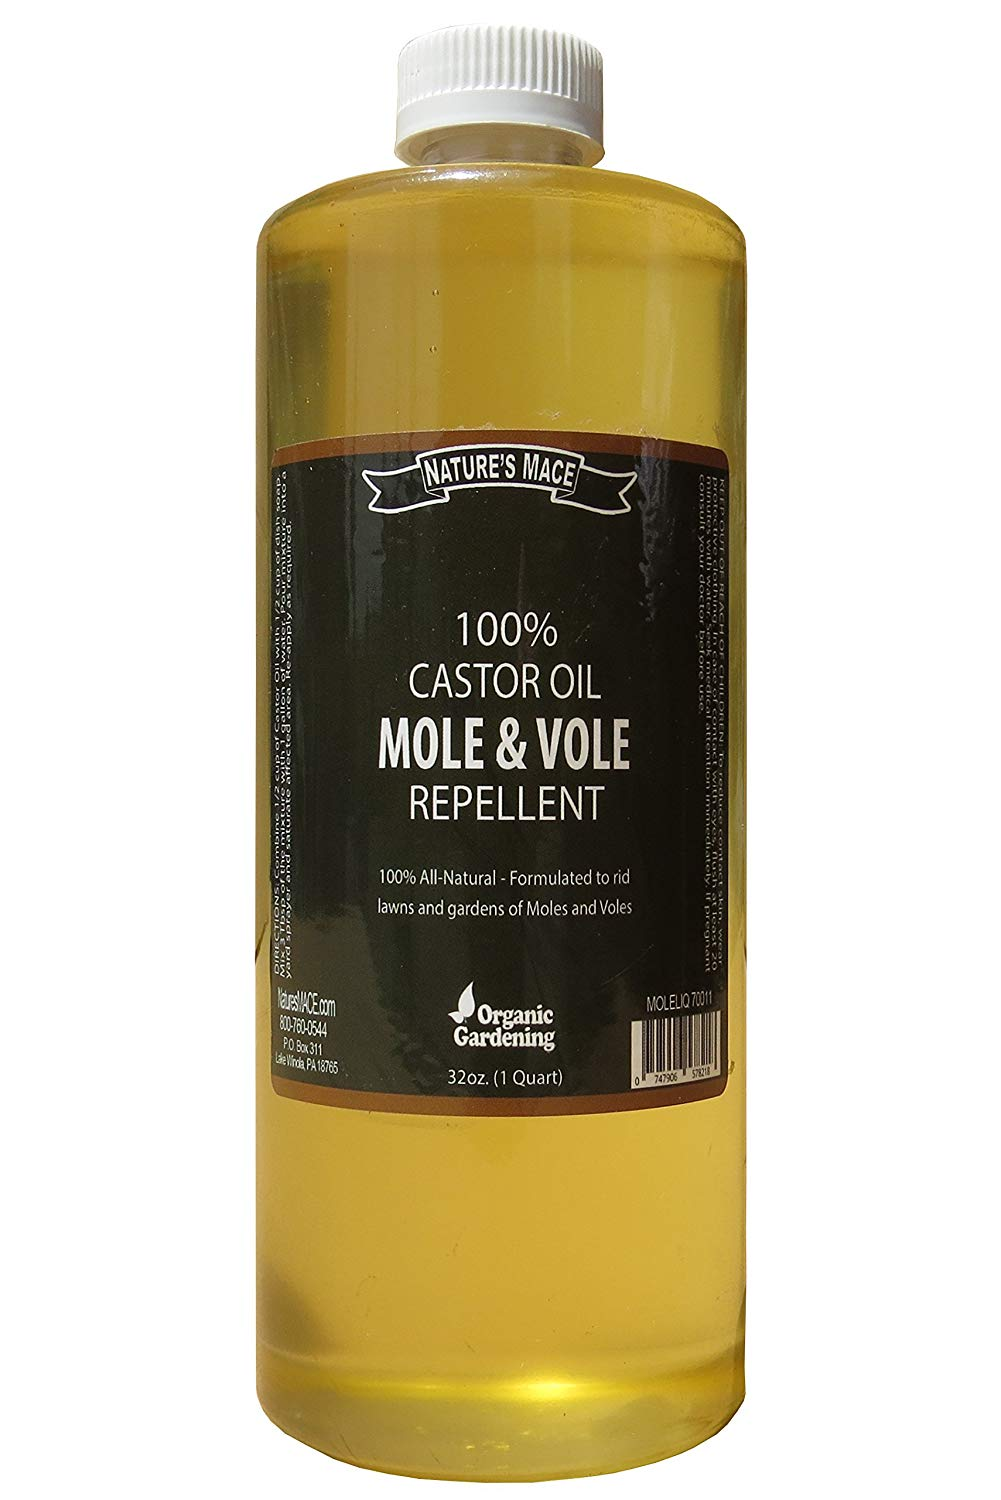 Nature Mace's Mole Repellent 100% Castor Oil